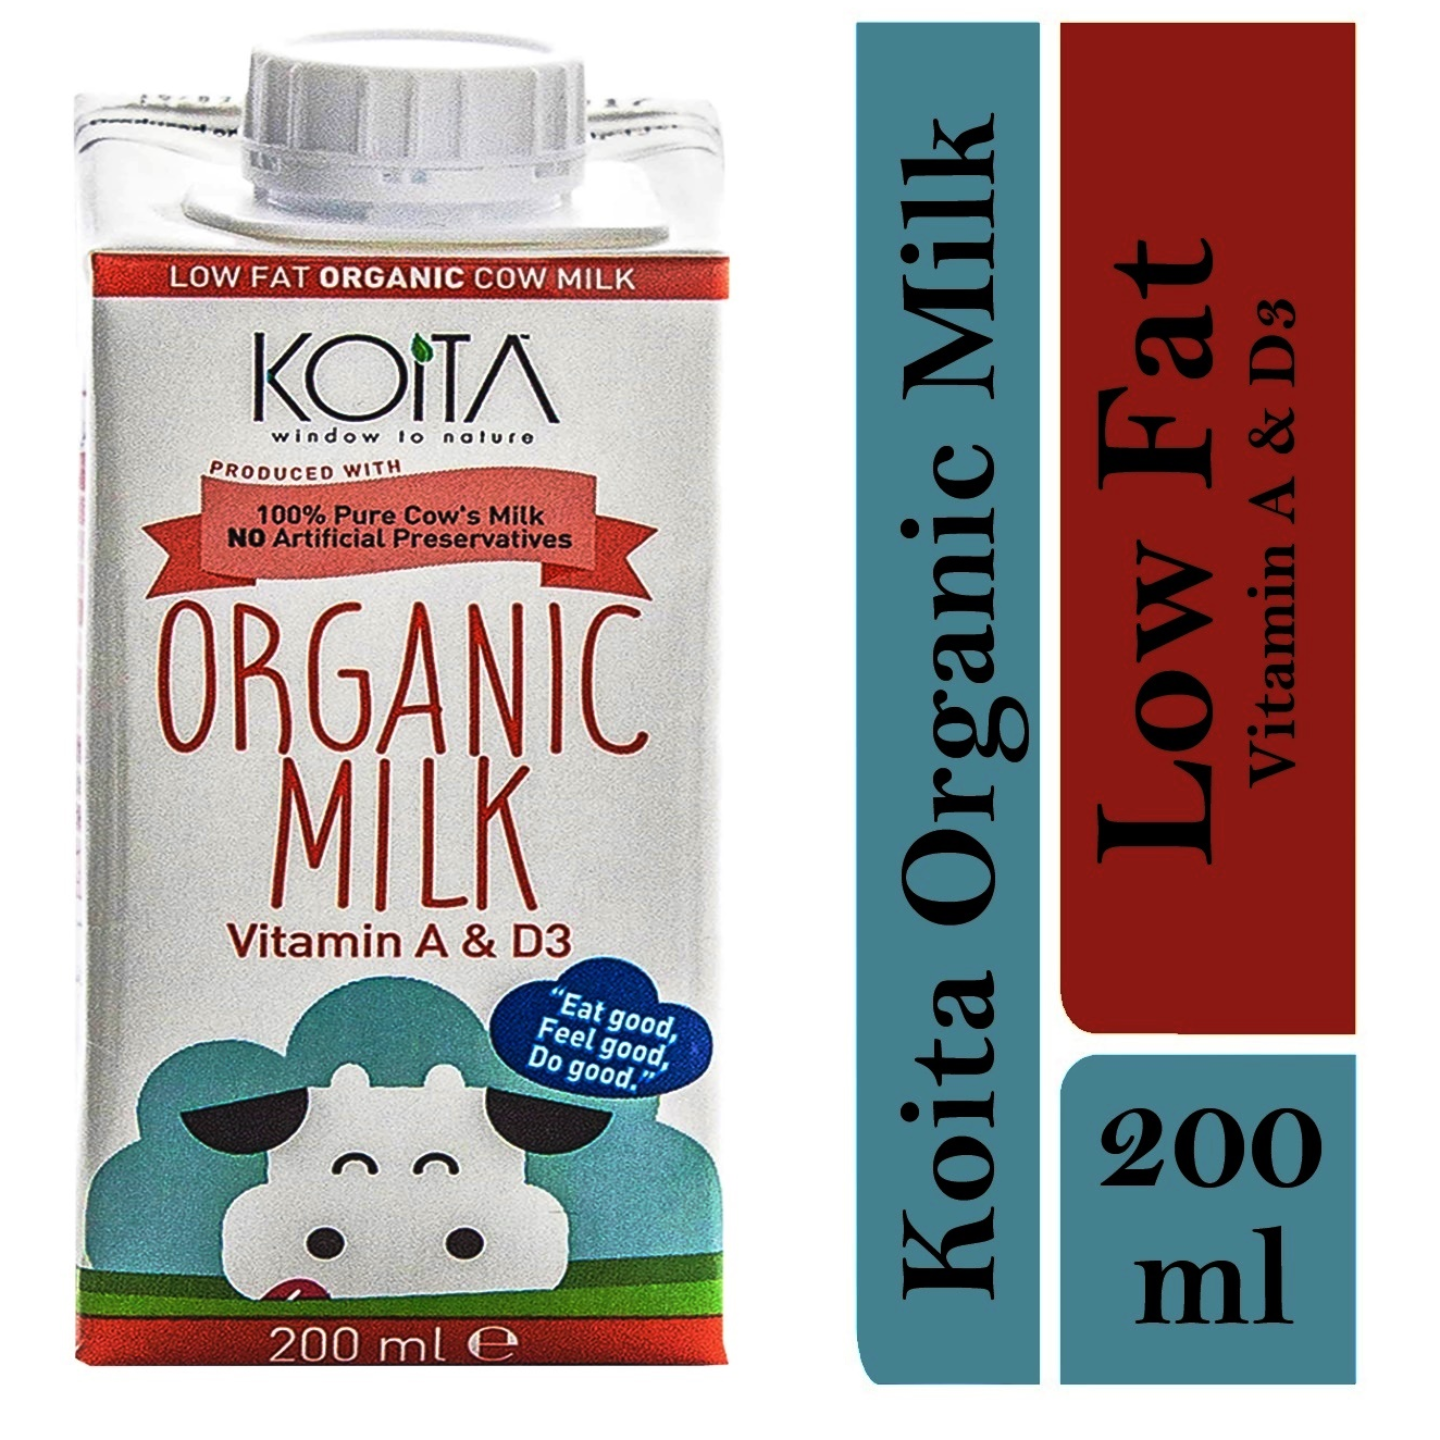 Koita Premium Organic Low-Fat Milk 1 x 200ml